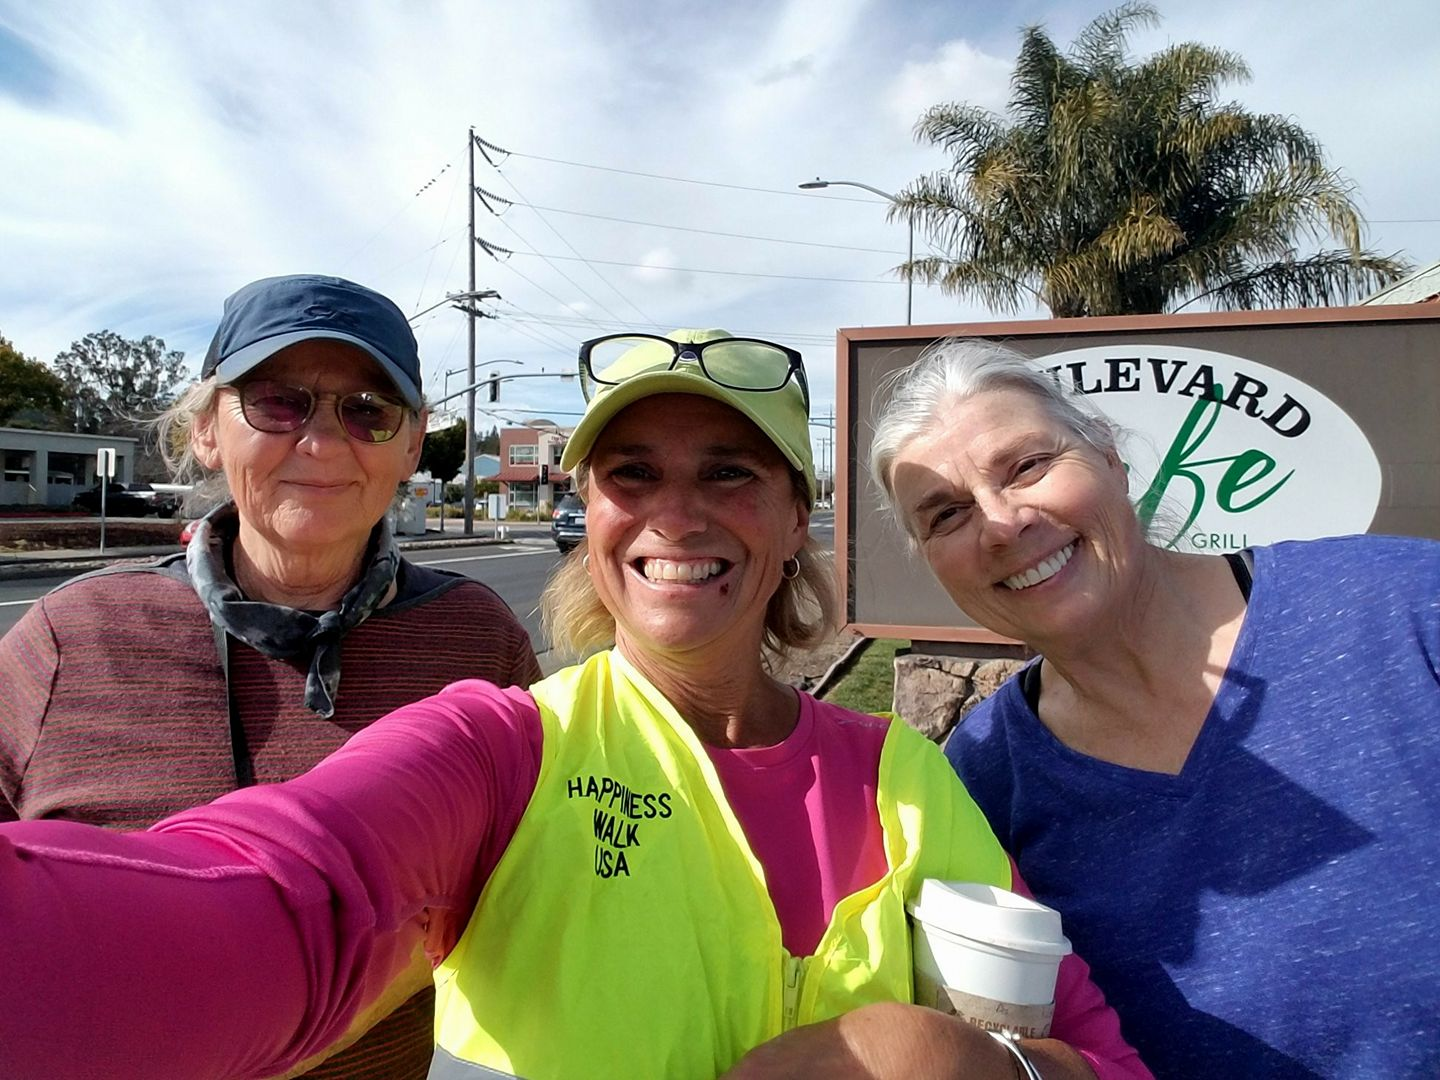 Gross National Happiness USA walker Paula Francis, center, with two walk interviewees in northern California.